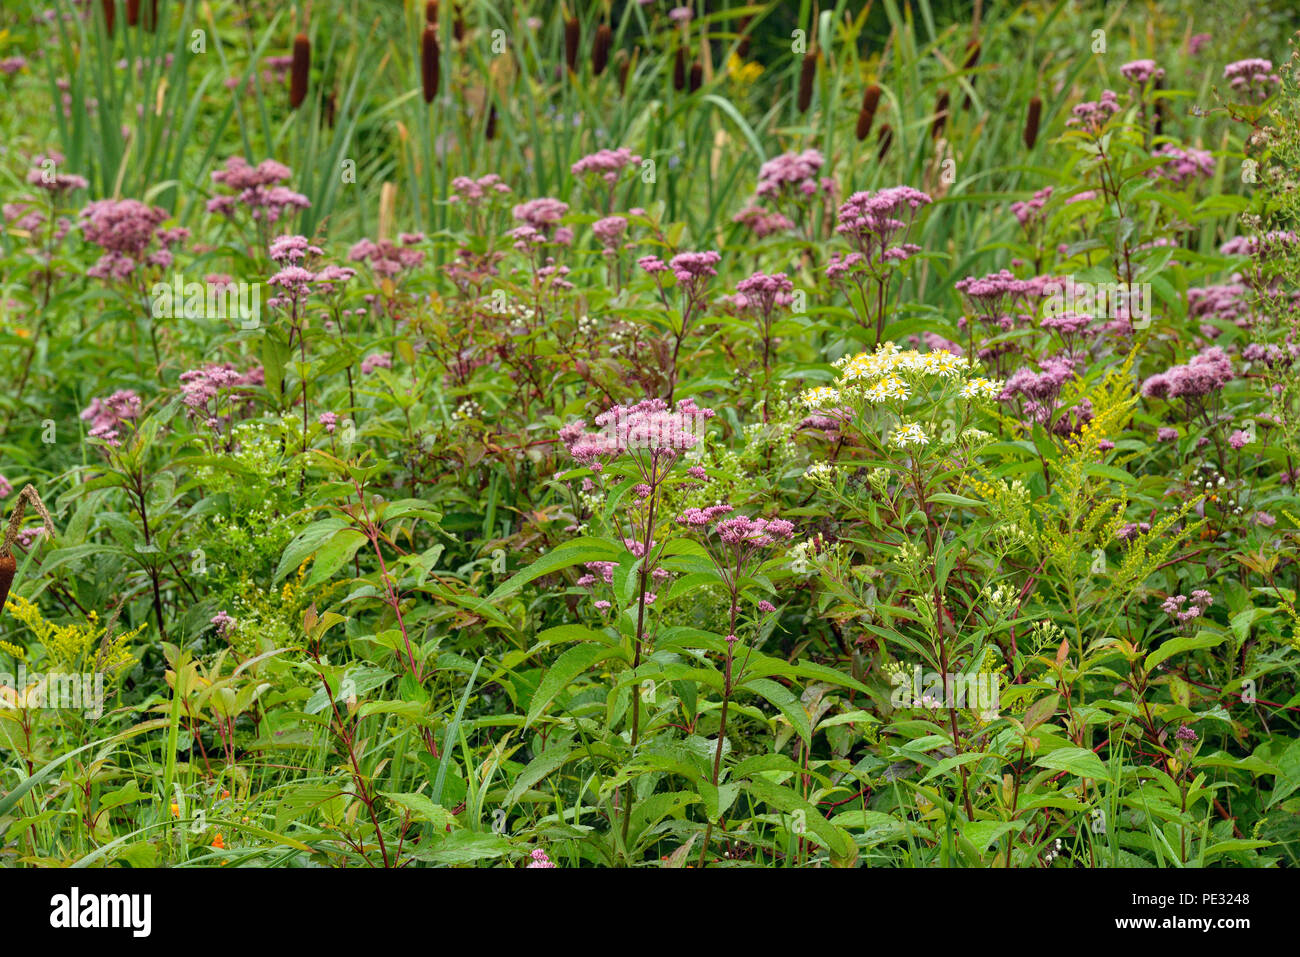 Late summer wetland flowers- joe-pye weed and aster, Greater Sudbury, Ontario, Canada - Stock Image